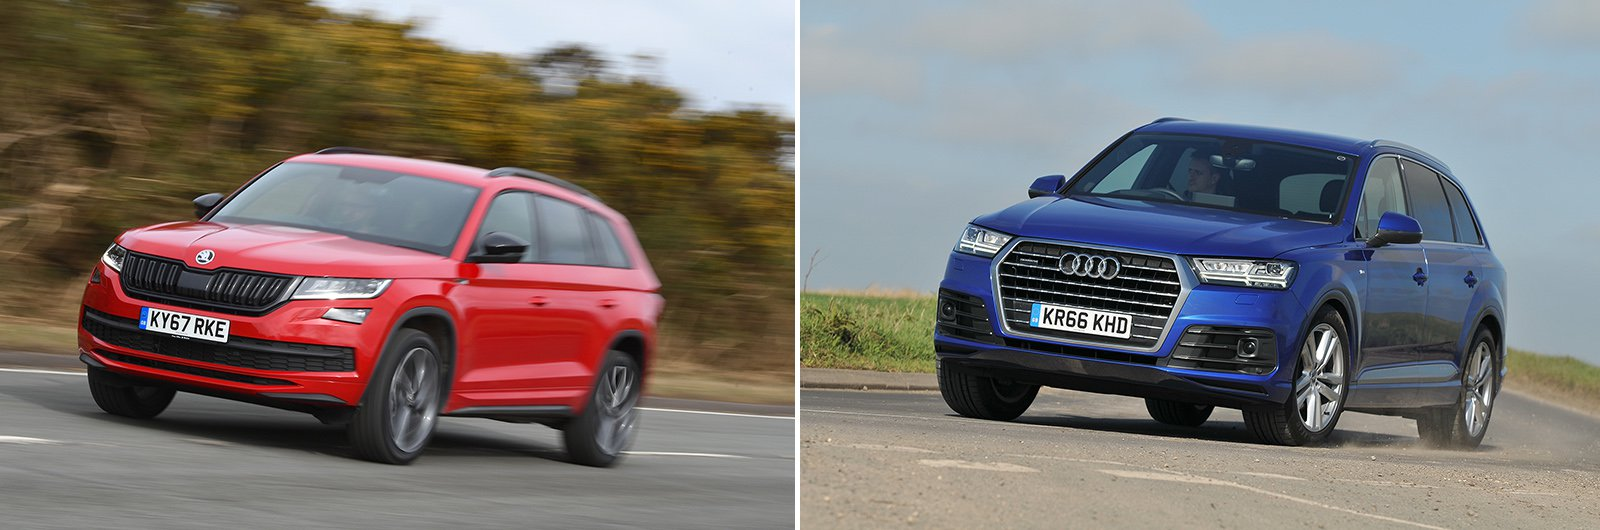 New Peugeot 5008 vs used Range Rover Sport alternatives